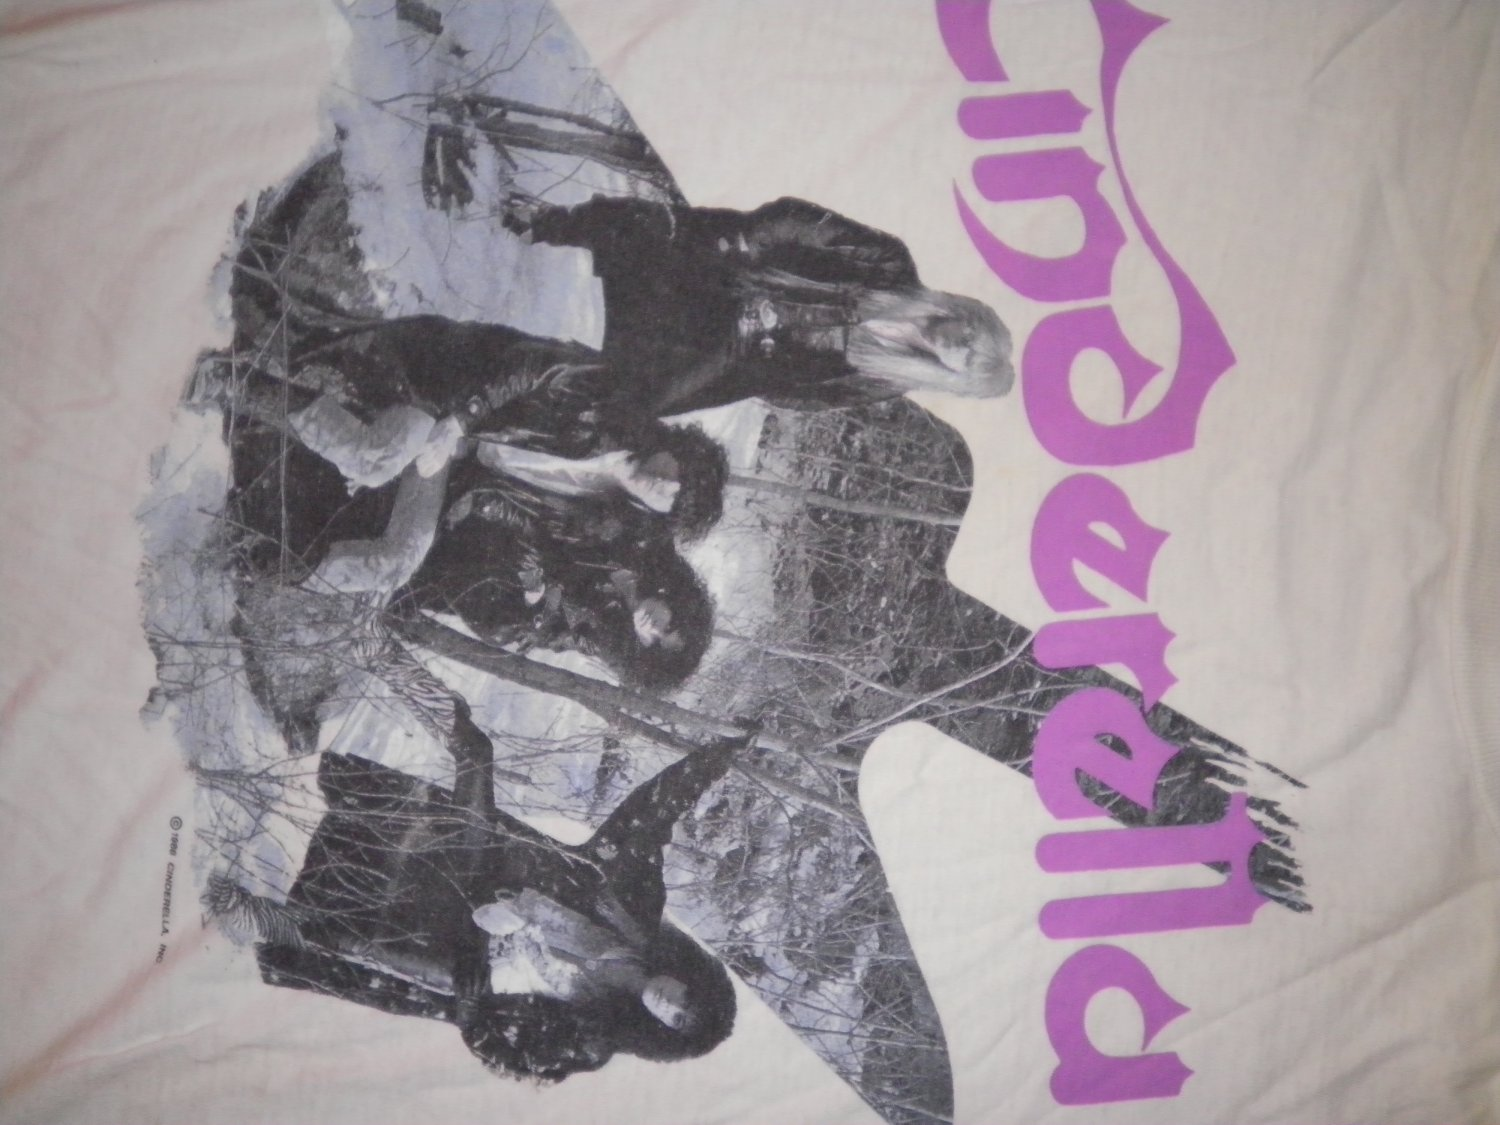 CINDERELLA SHIRT Long Cold Winter Tour 1988-89 2XL XXL VINTAGE SALE